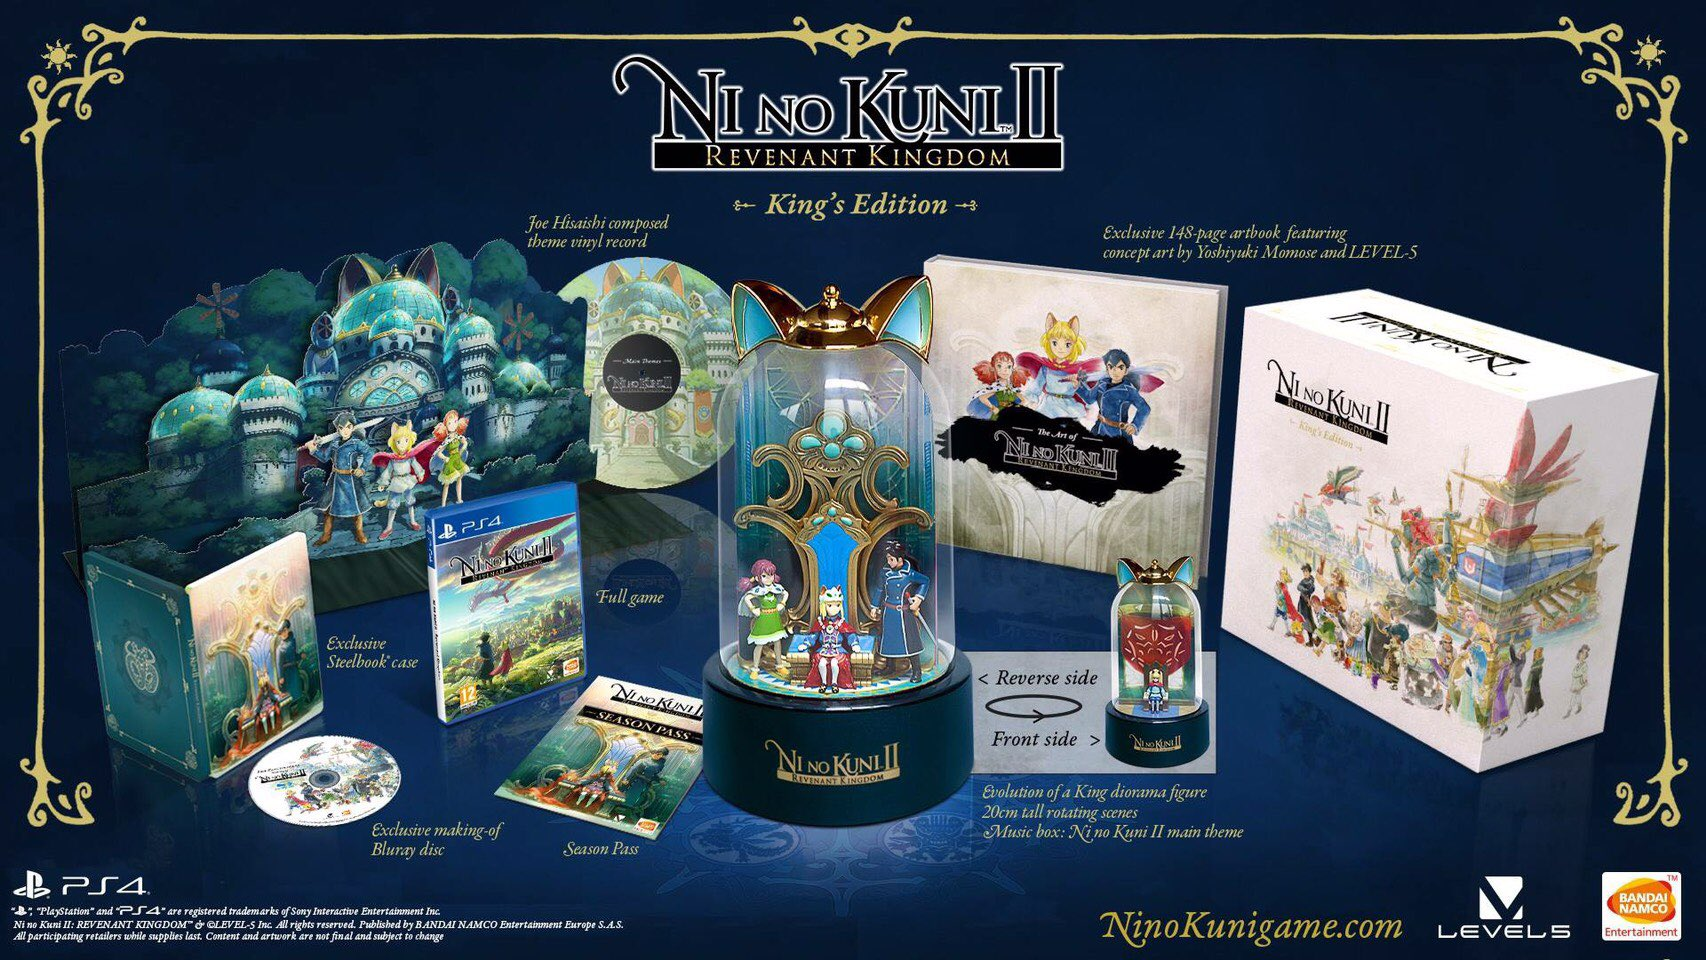 Ni no Kuni II's pre-order options revealed